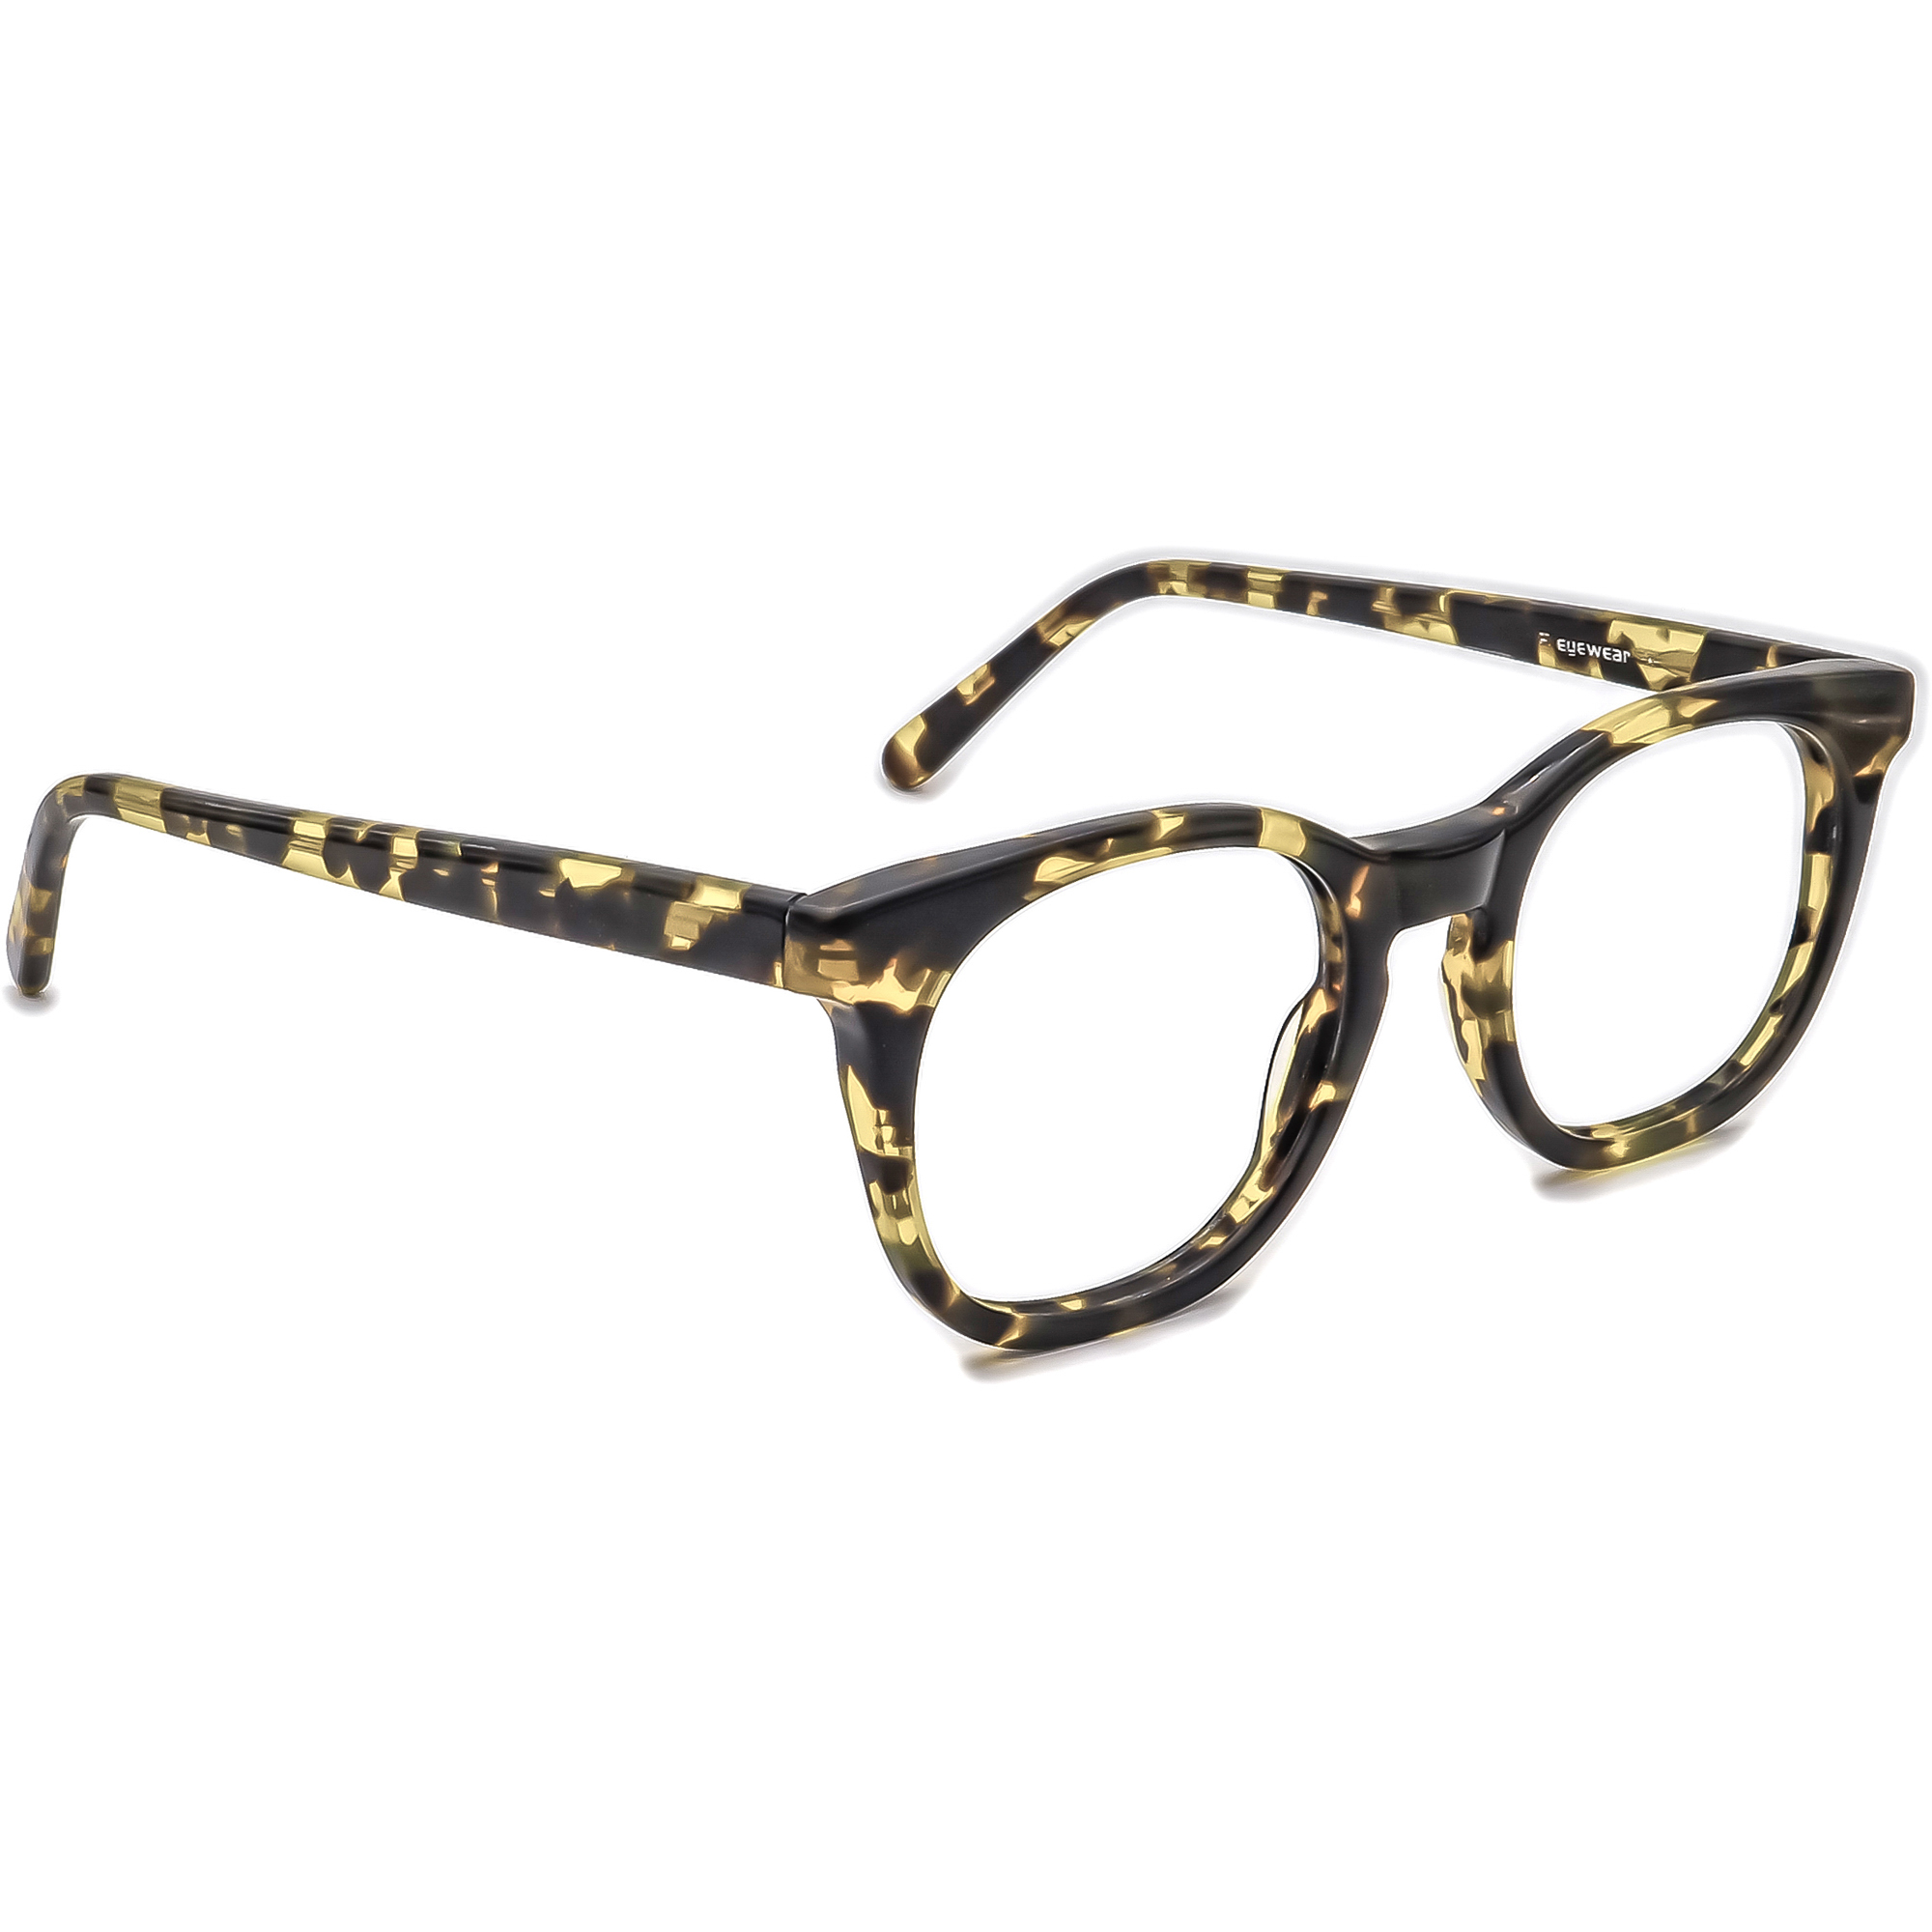 Kala Eyewear Eyeglasses Buddy Handmade in the USA Tortoise Square 48[]16 140